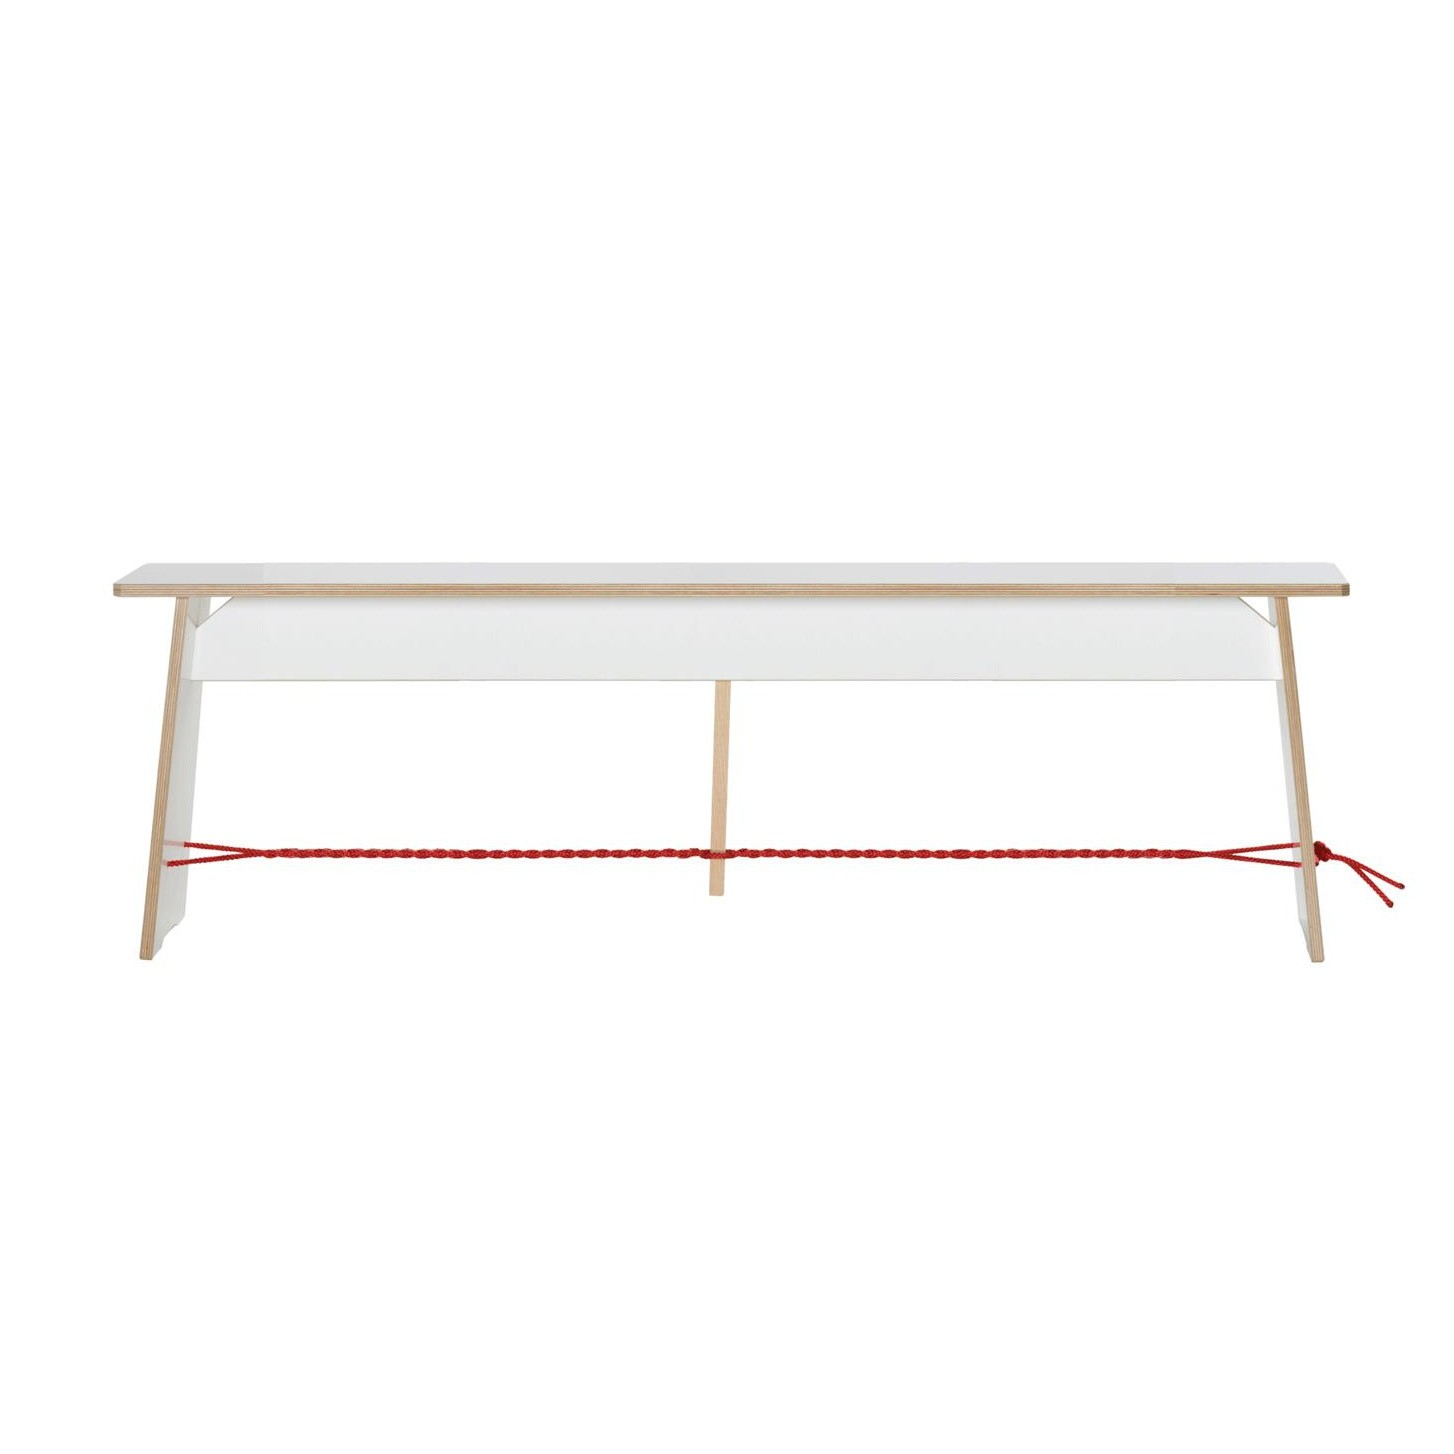 Sitzauflage Bank Bank 140 Cm Best Bank 140 Cm With Bank 140 Cm Bank 140 Cm With